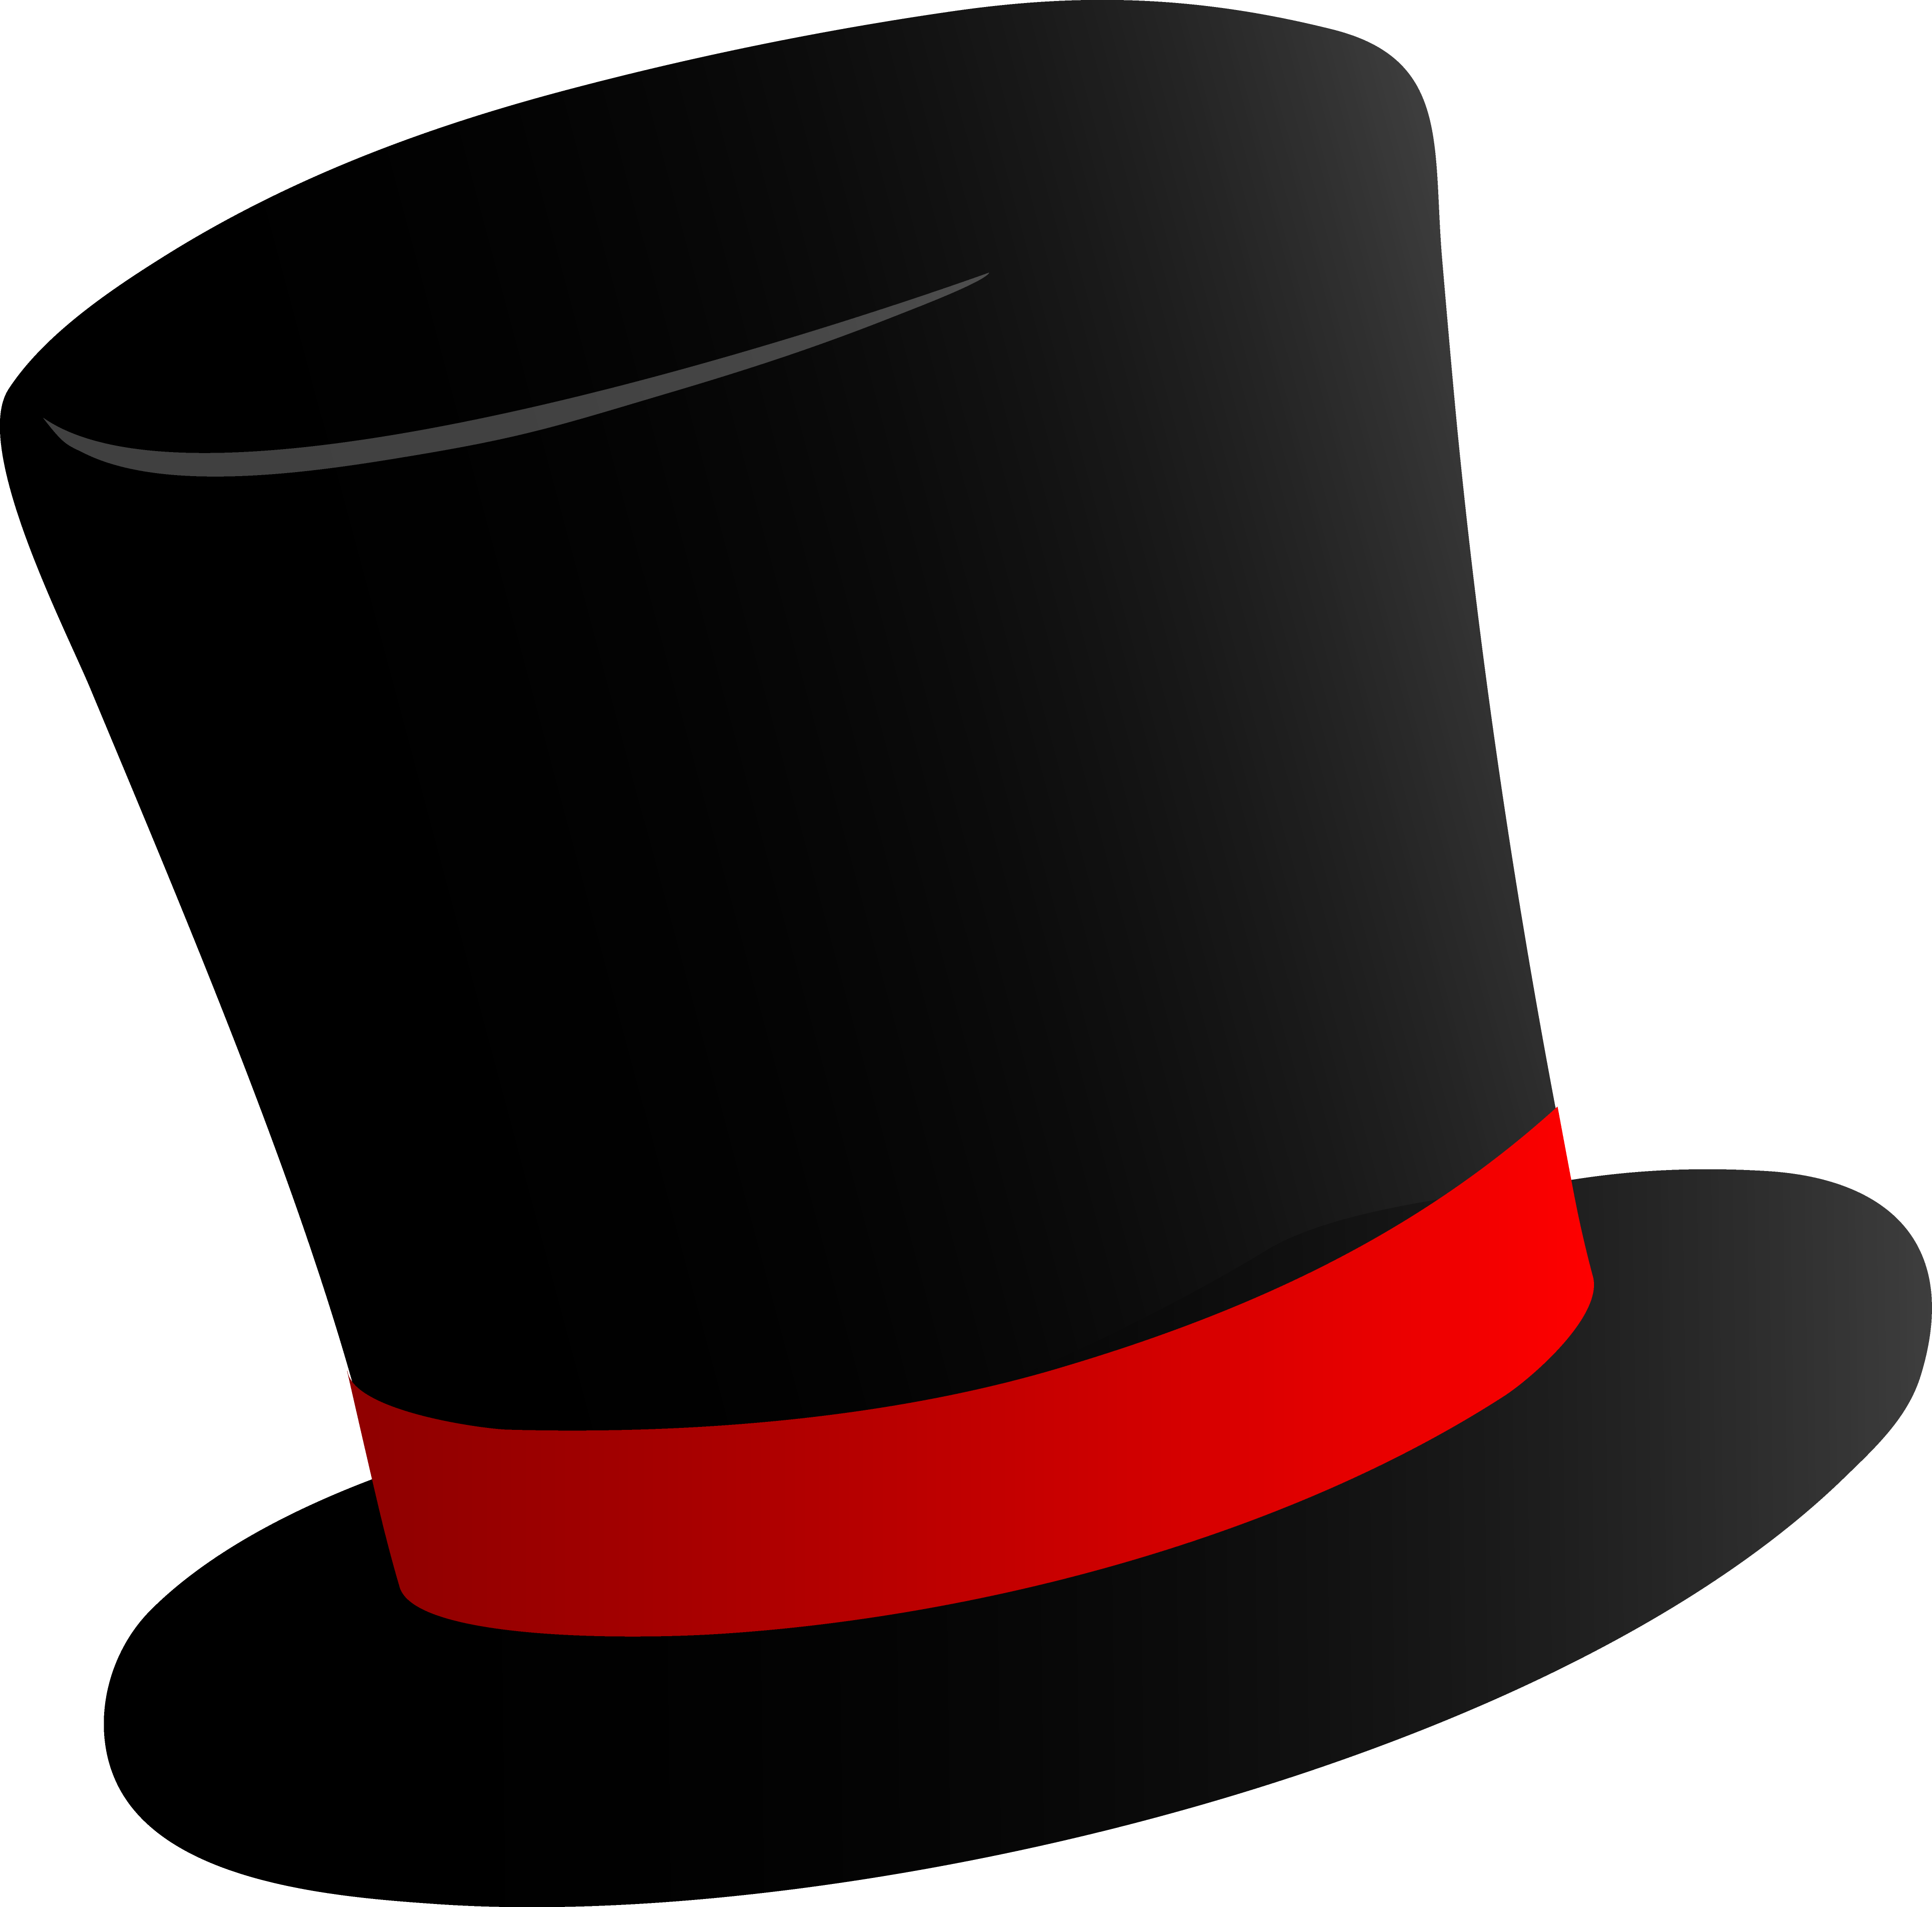 top hat clipart cartoon